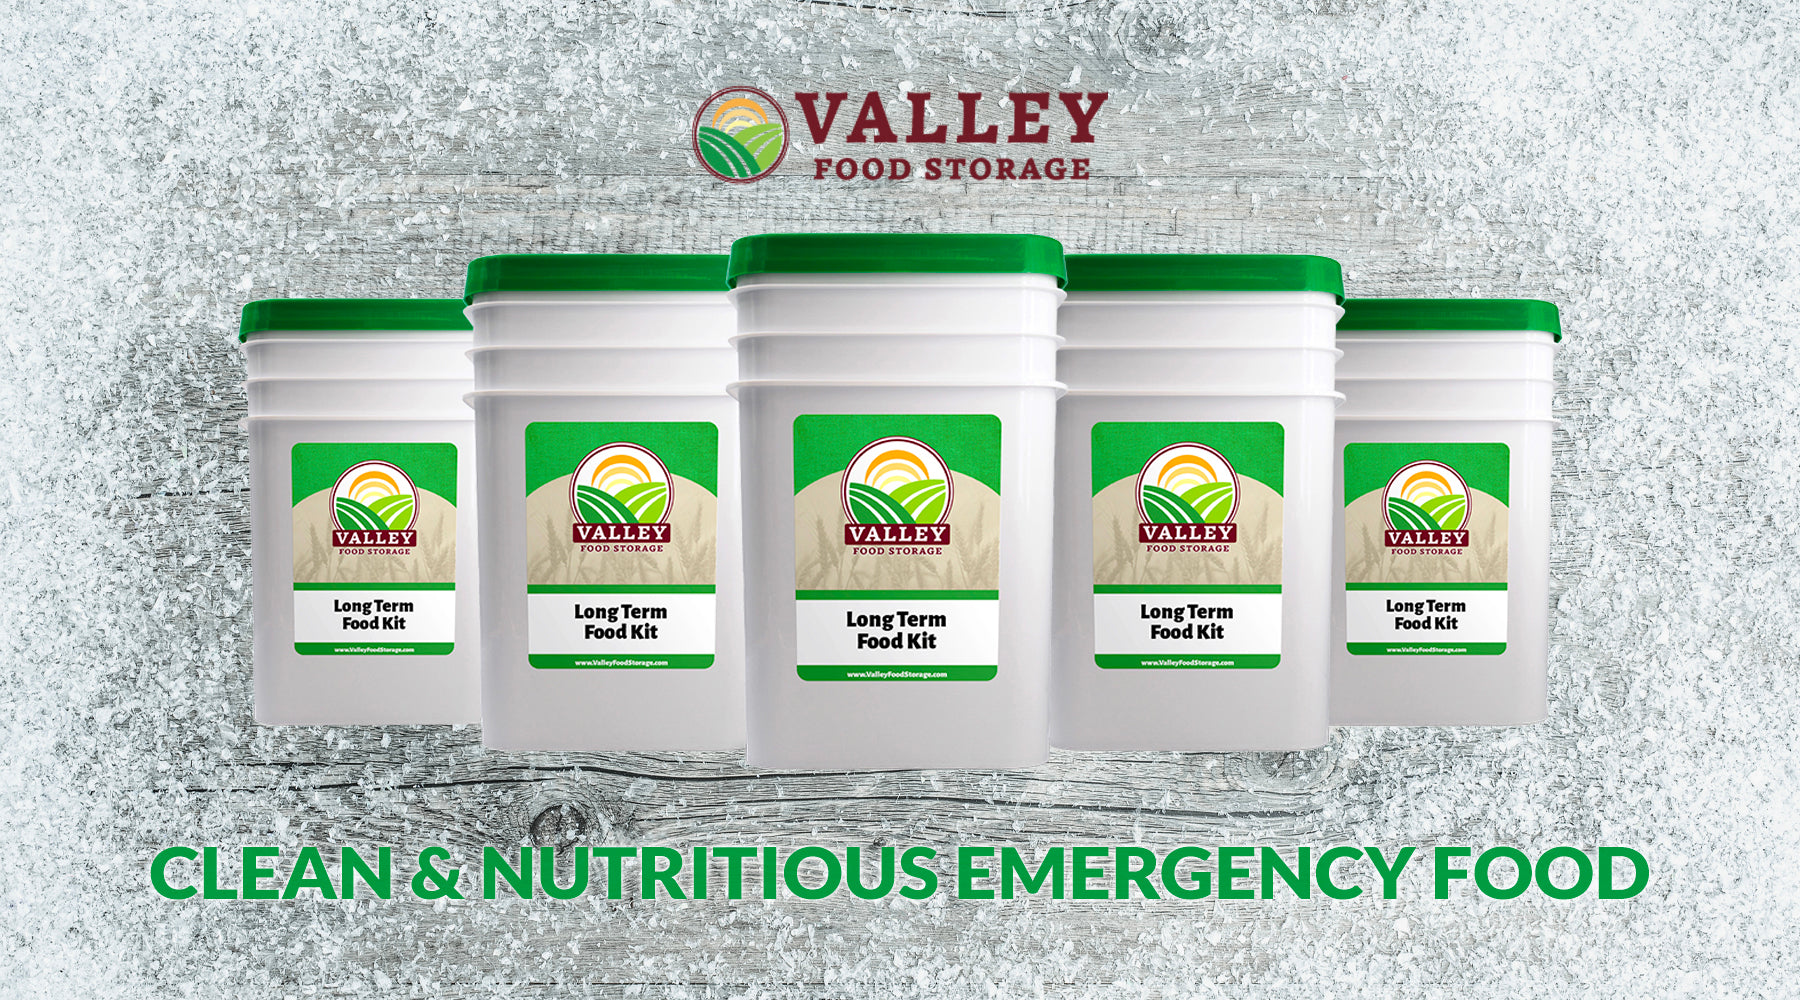 valley food storage clean and nutritious emergency food